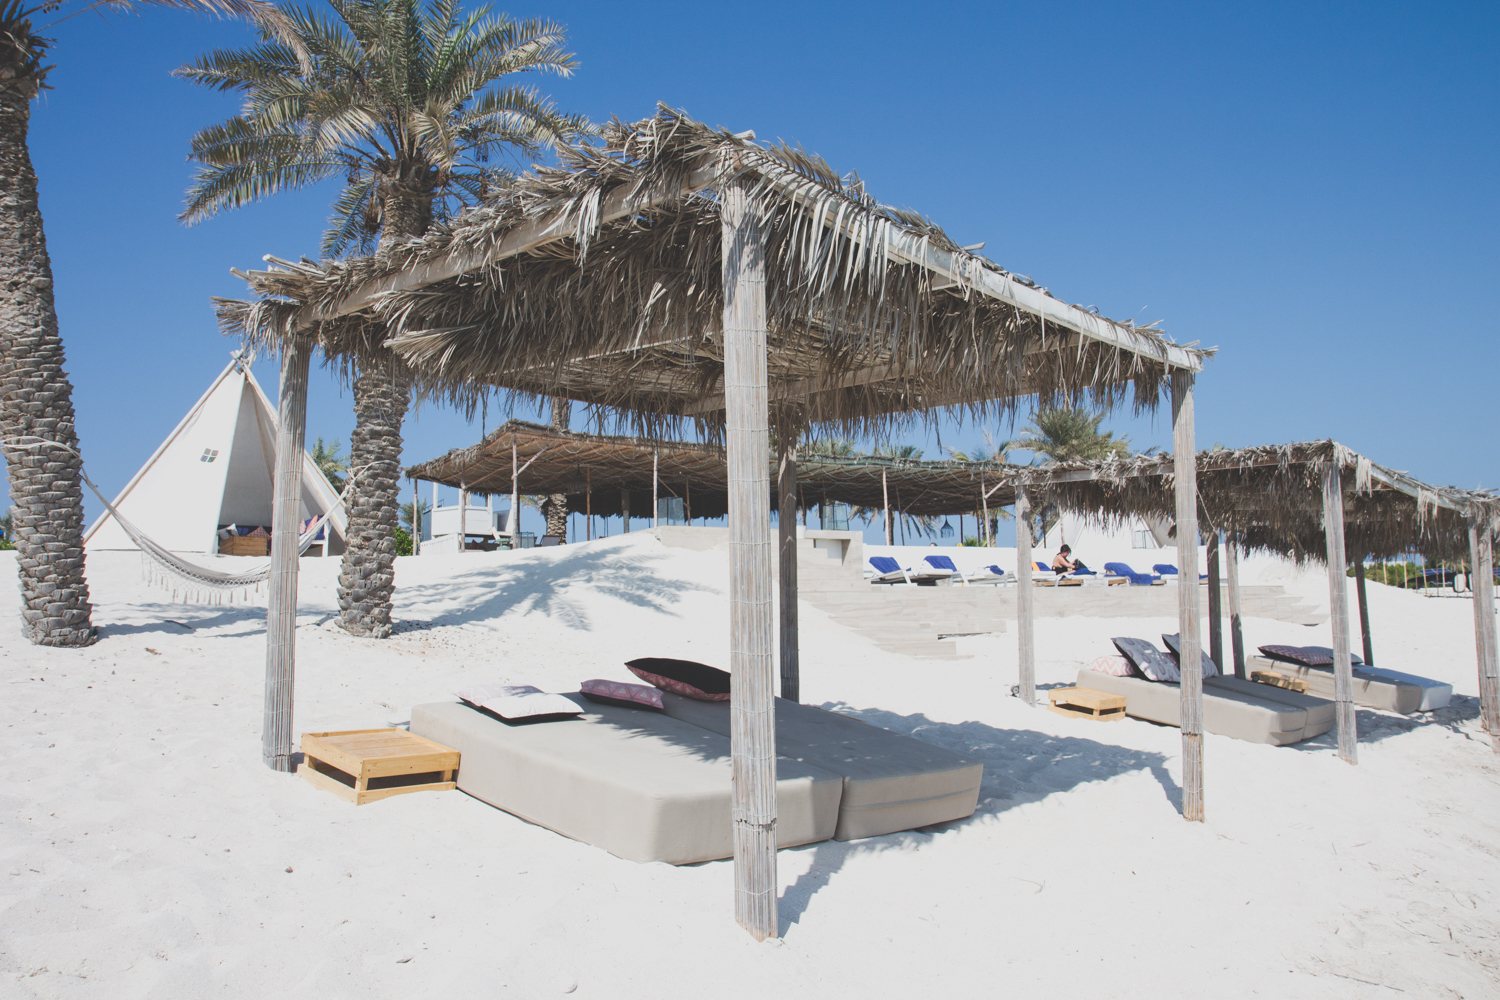 zaya nurai island sunbed, things to do in abu dhabi